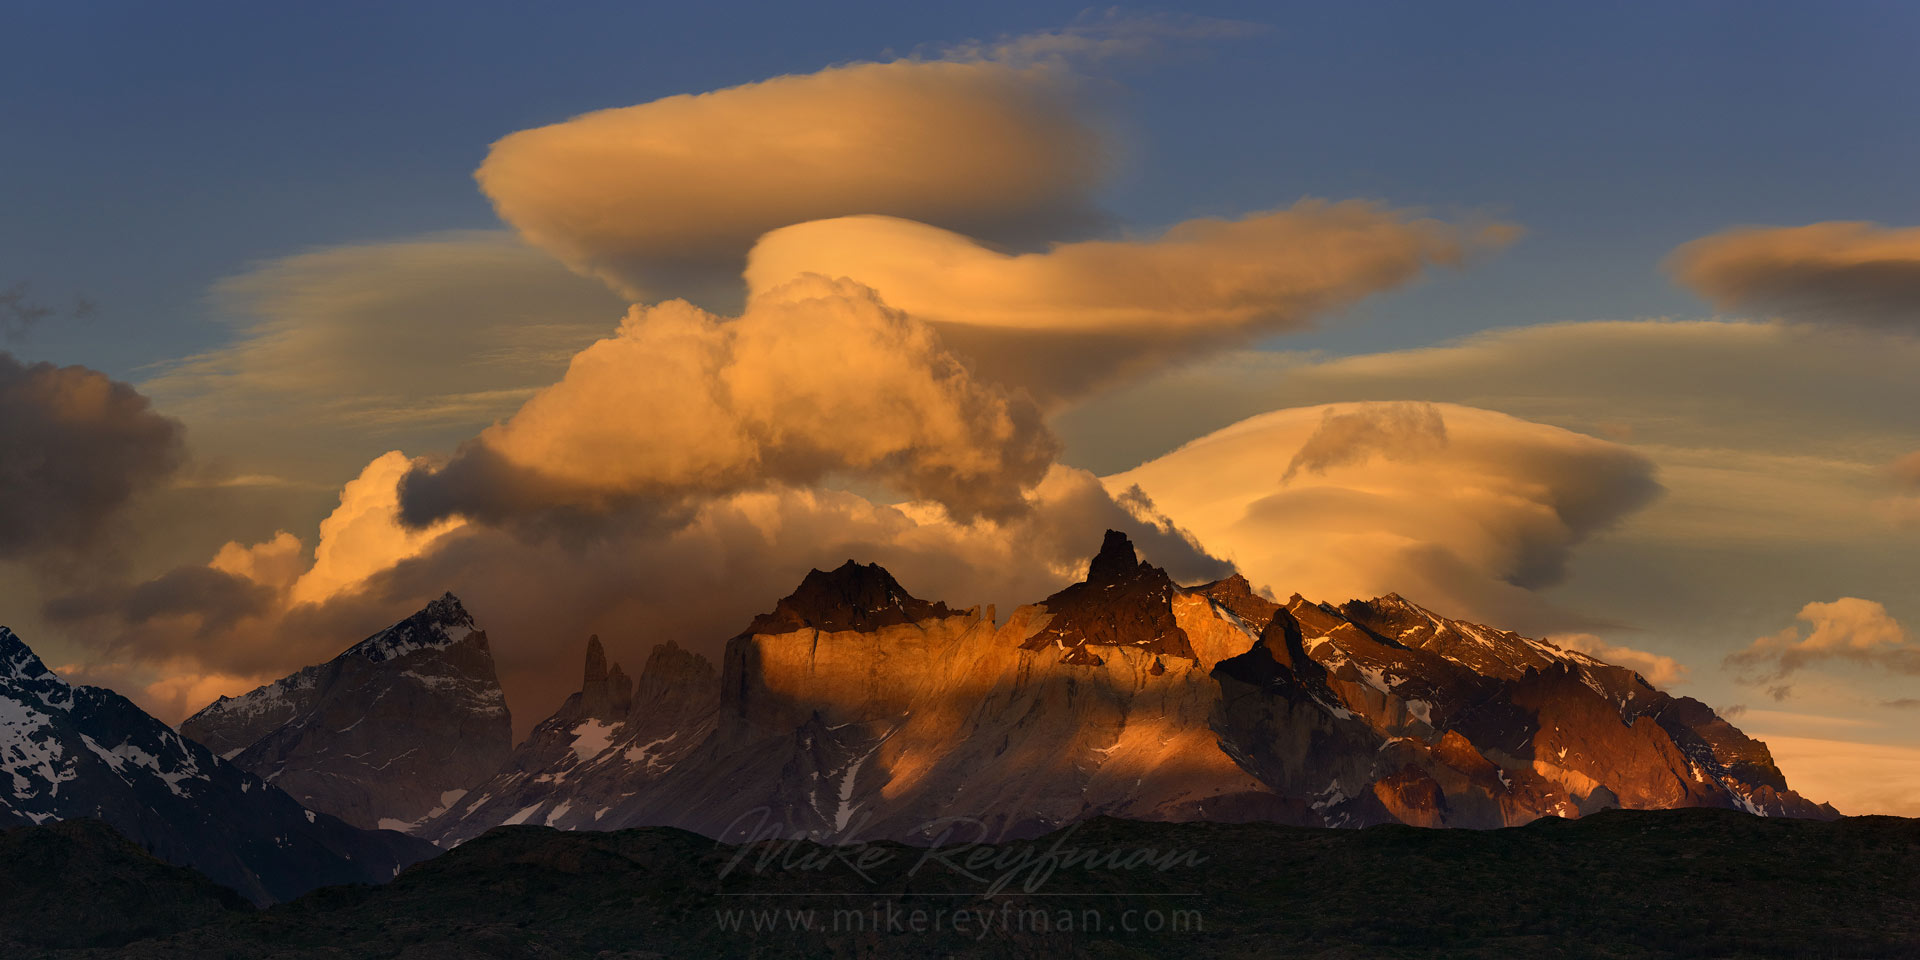 Crazy clouds over Cordillera del Paine. Torres del Paine National Park, Ultima Esperanza Province, Magallanes and Antartica Chilena Region XII, Patagonia, Chile. - Torres-Del-Paine-National-Park-Patagonia-Chile - Mike Reyfman Photography